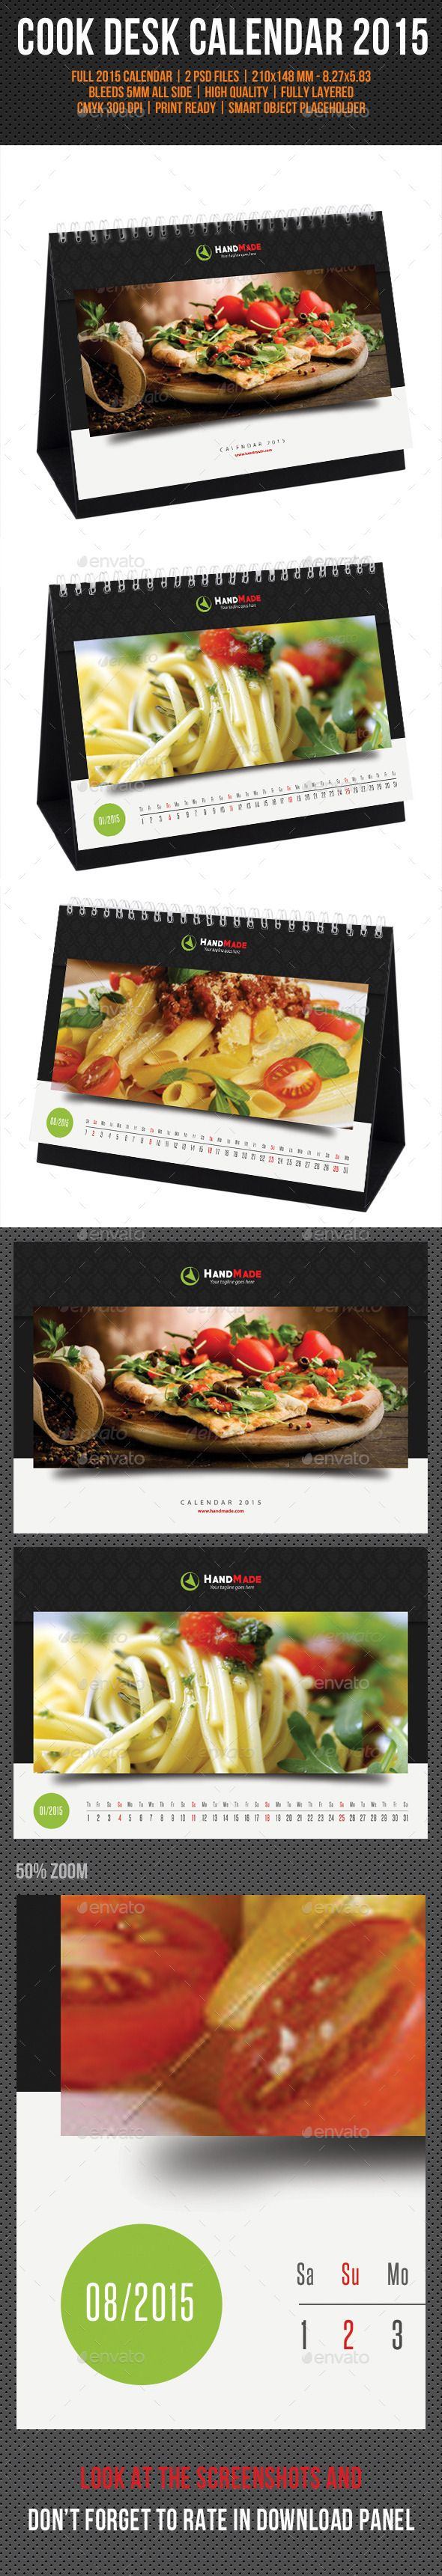 Cook And Food Desk Calendar 2015 Template | Buy and Download: http://graphicriver.net/item/cook-and-food-desk-calendar-2015-v02/9713480?ref=ksioks